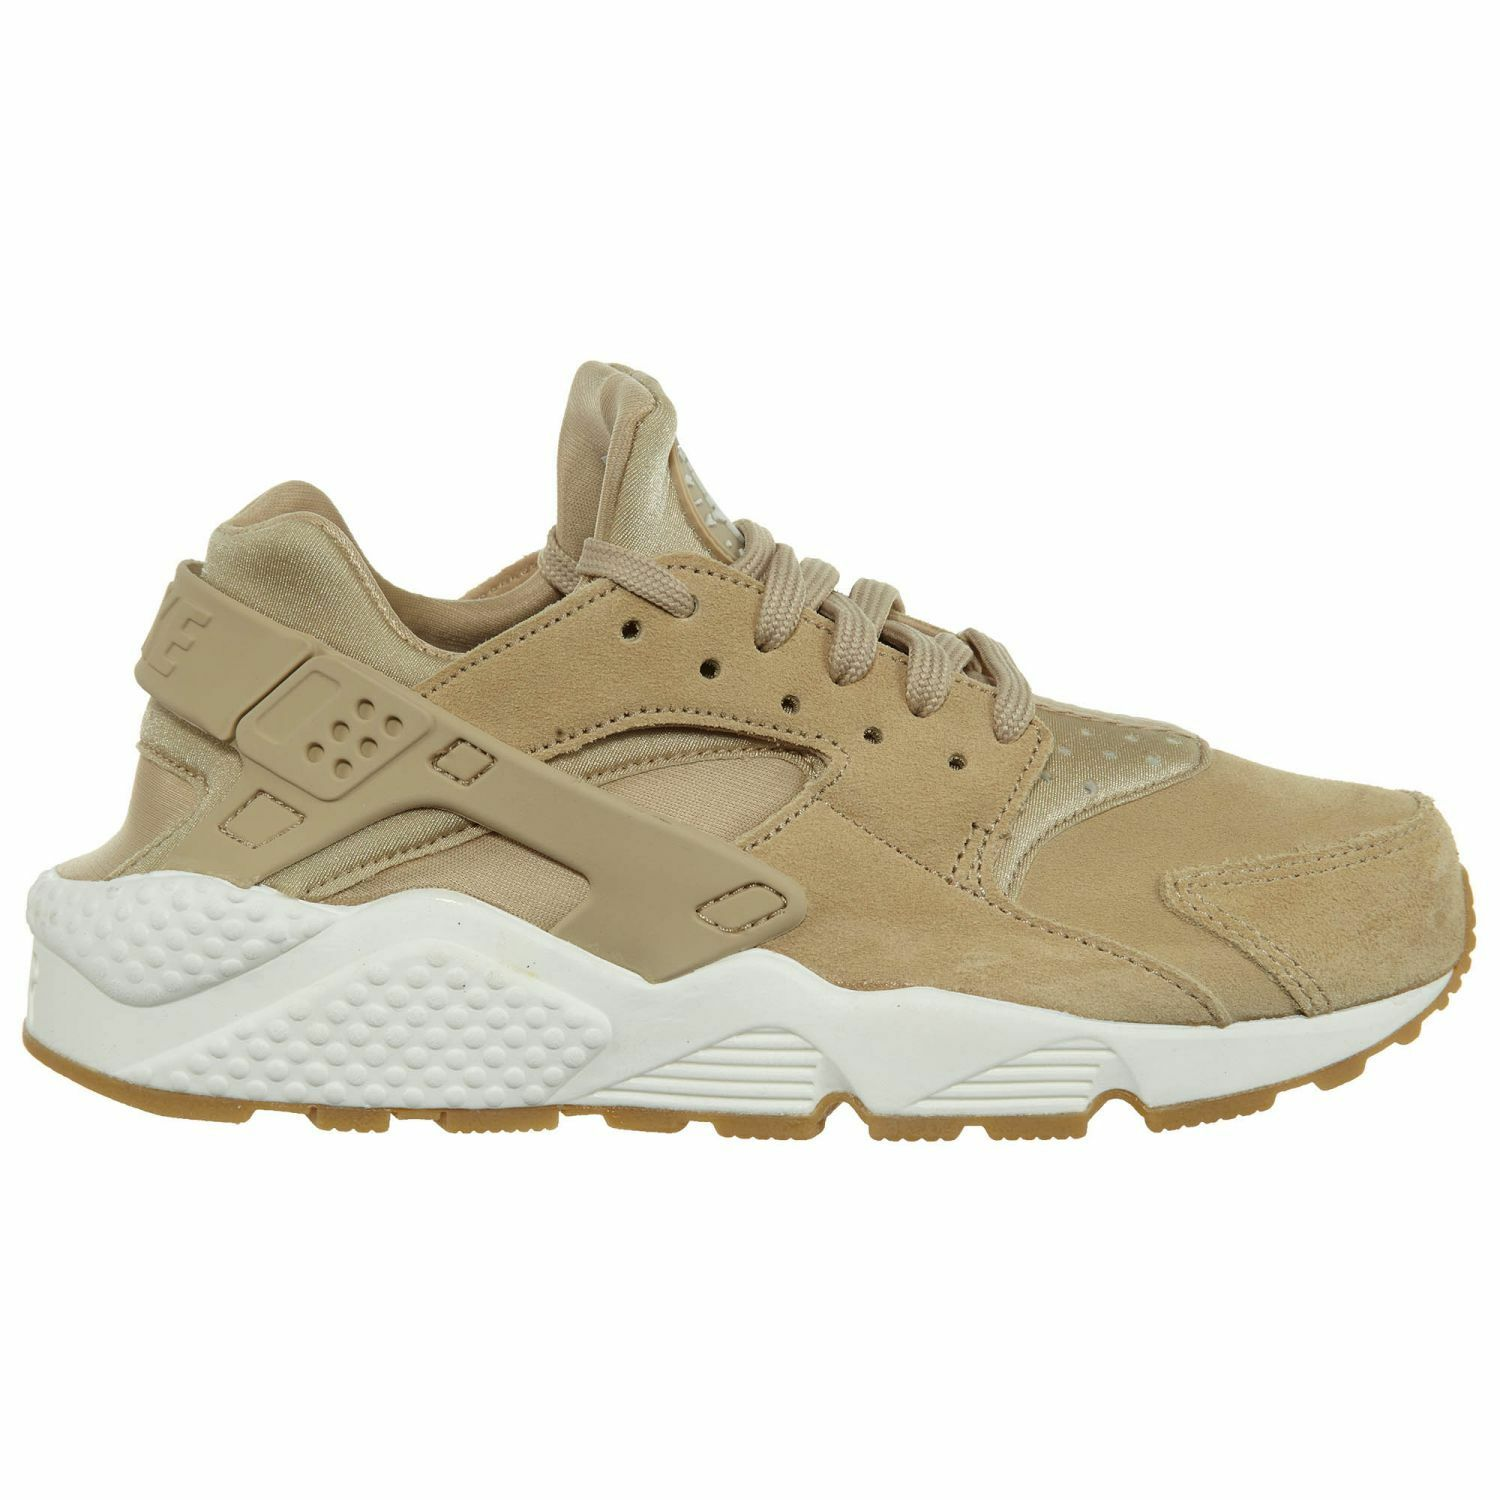 Nike Air Huarache Run SD Womens AA0524-200 Mushroom Bone Running shoes Size 5.5